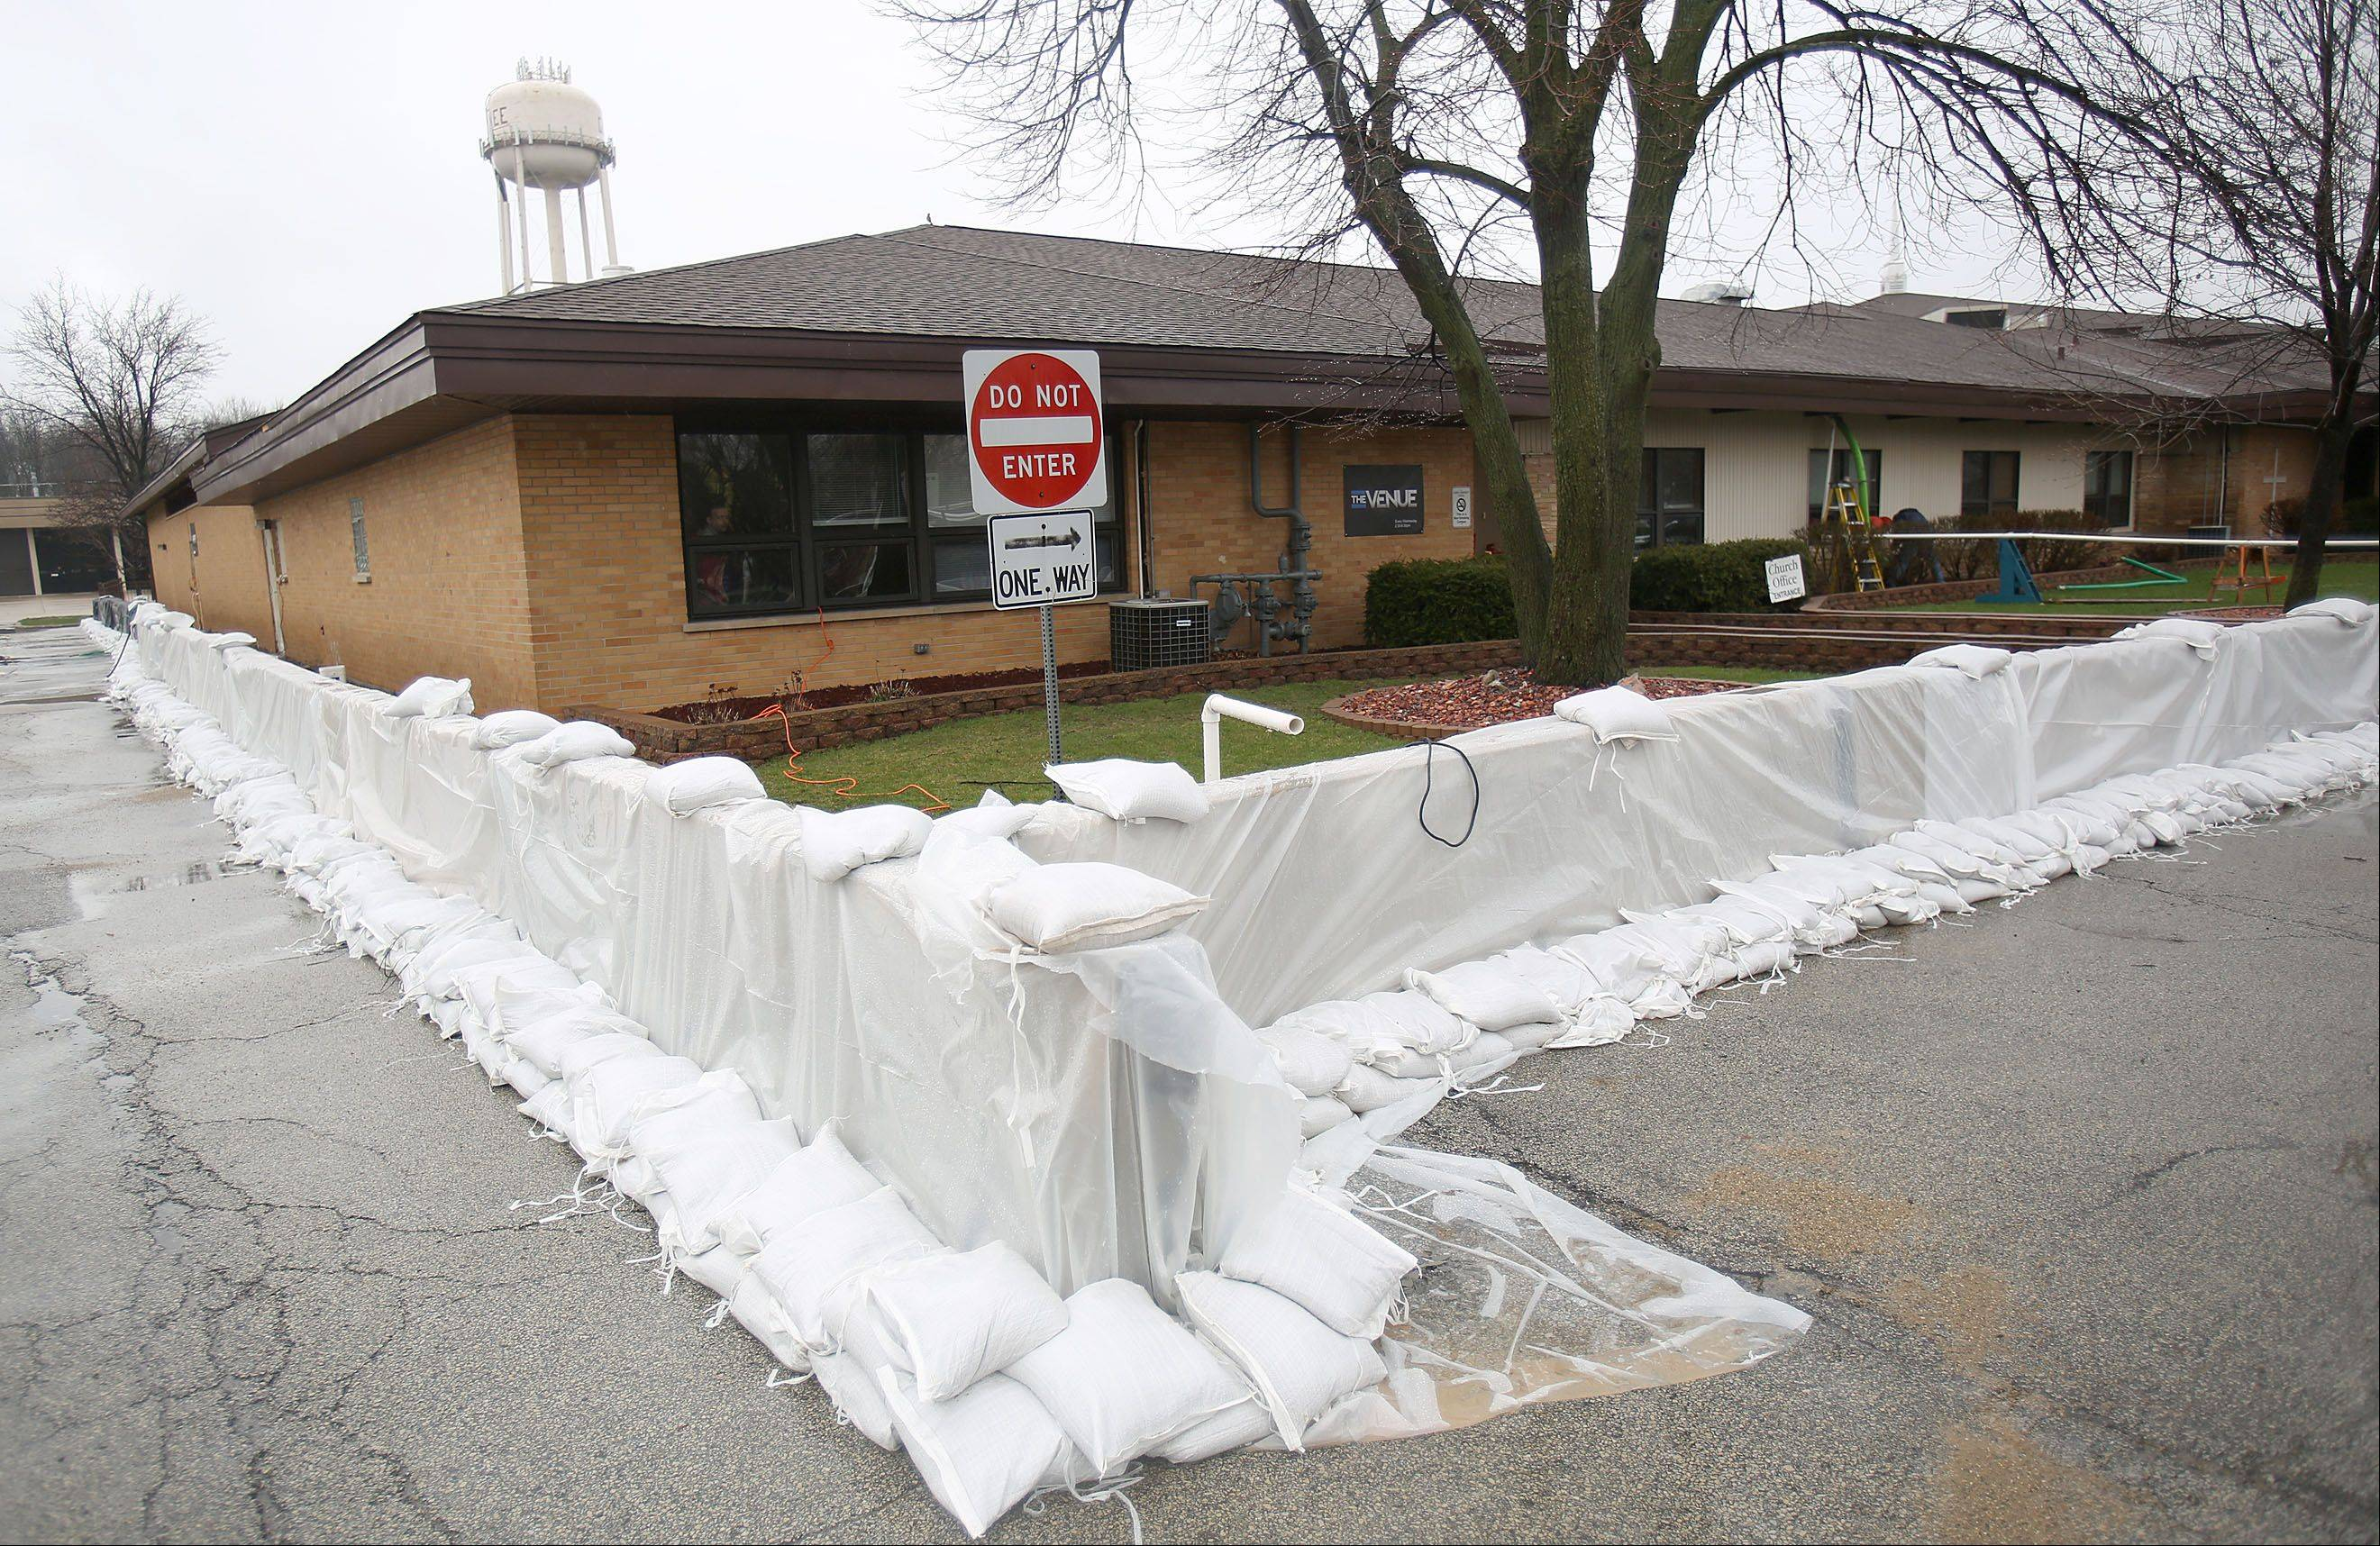 While floodwater wasn't close Thursday, sandbags were placed around Gurnee Community Church east of the Des Plaines River in Gurnee.